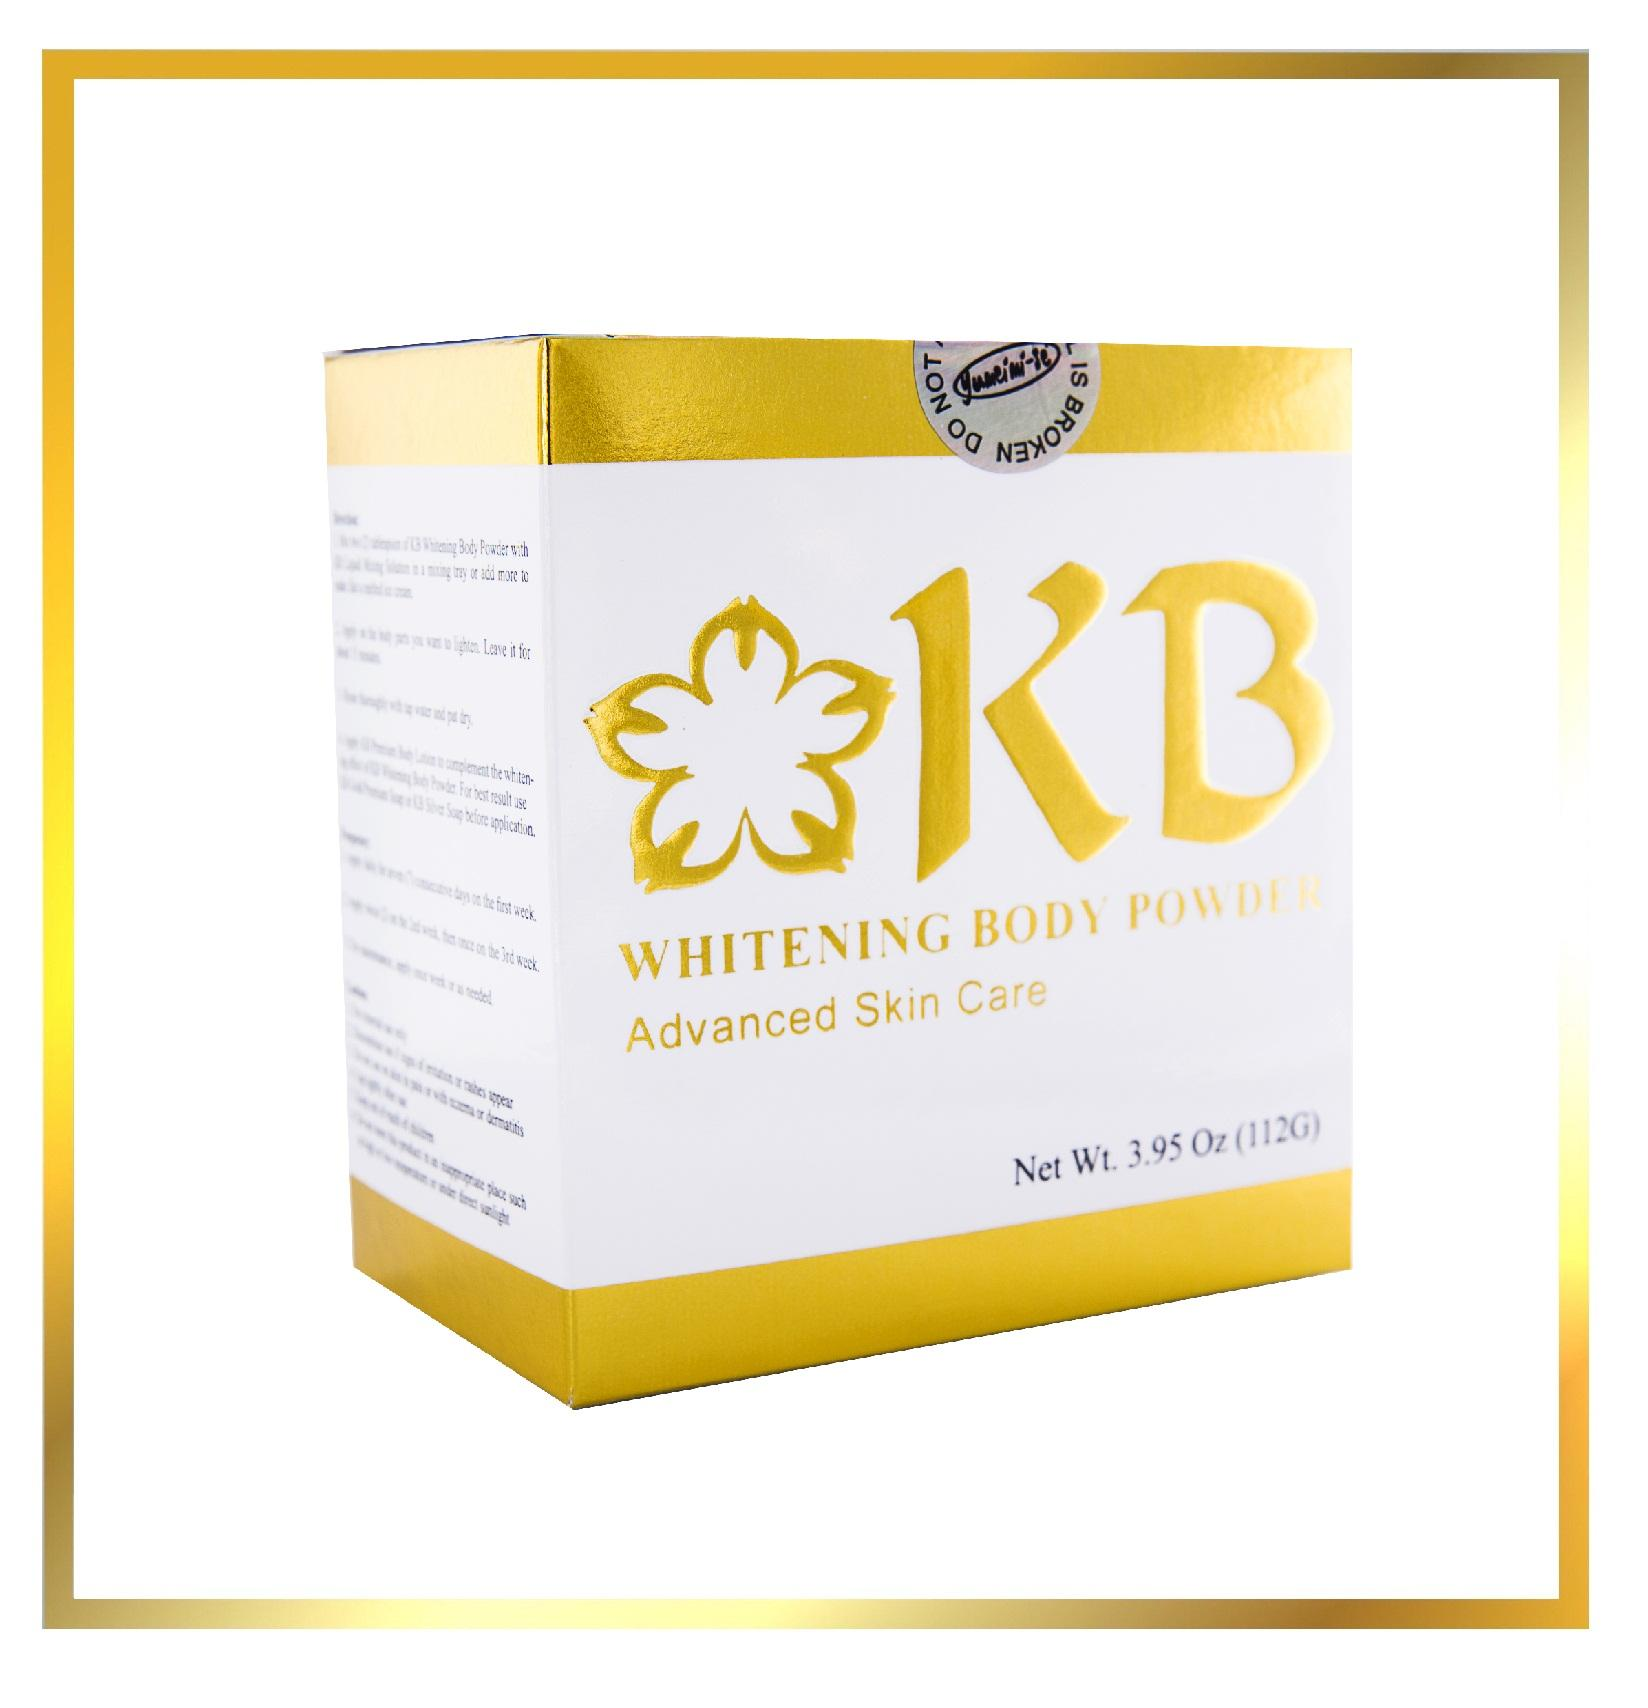 KB Whitening Body Powder